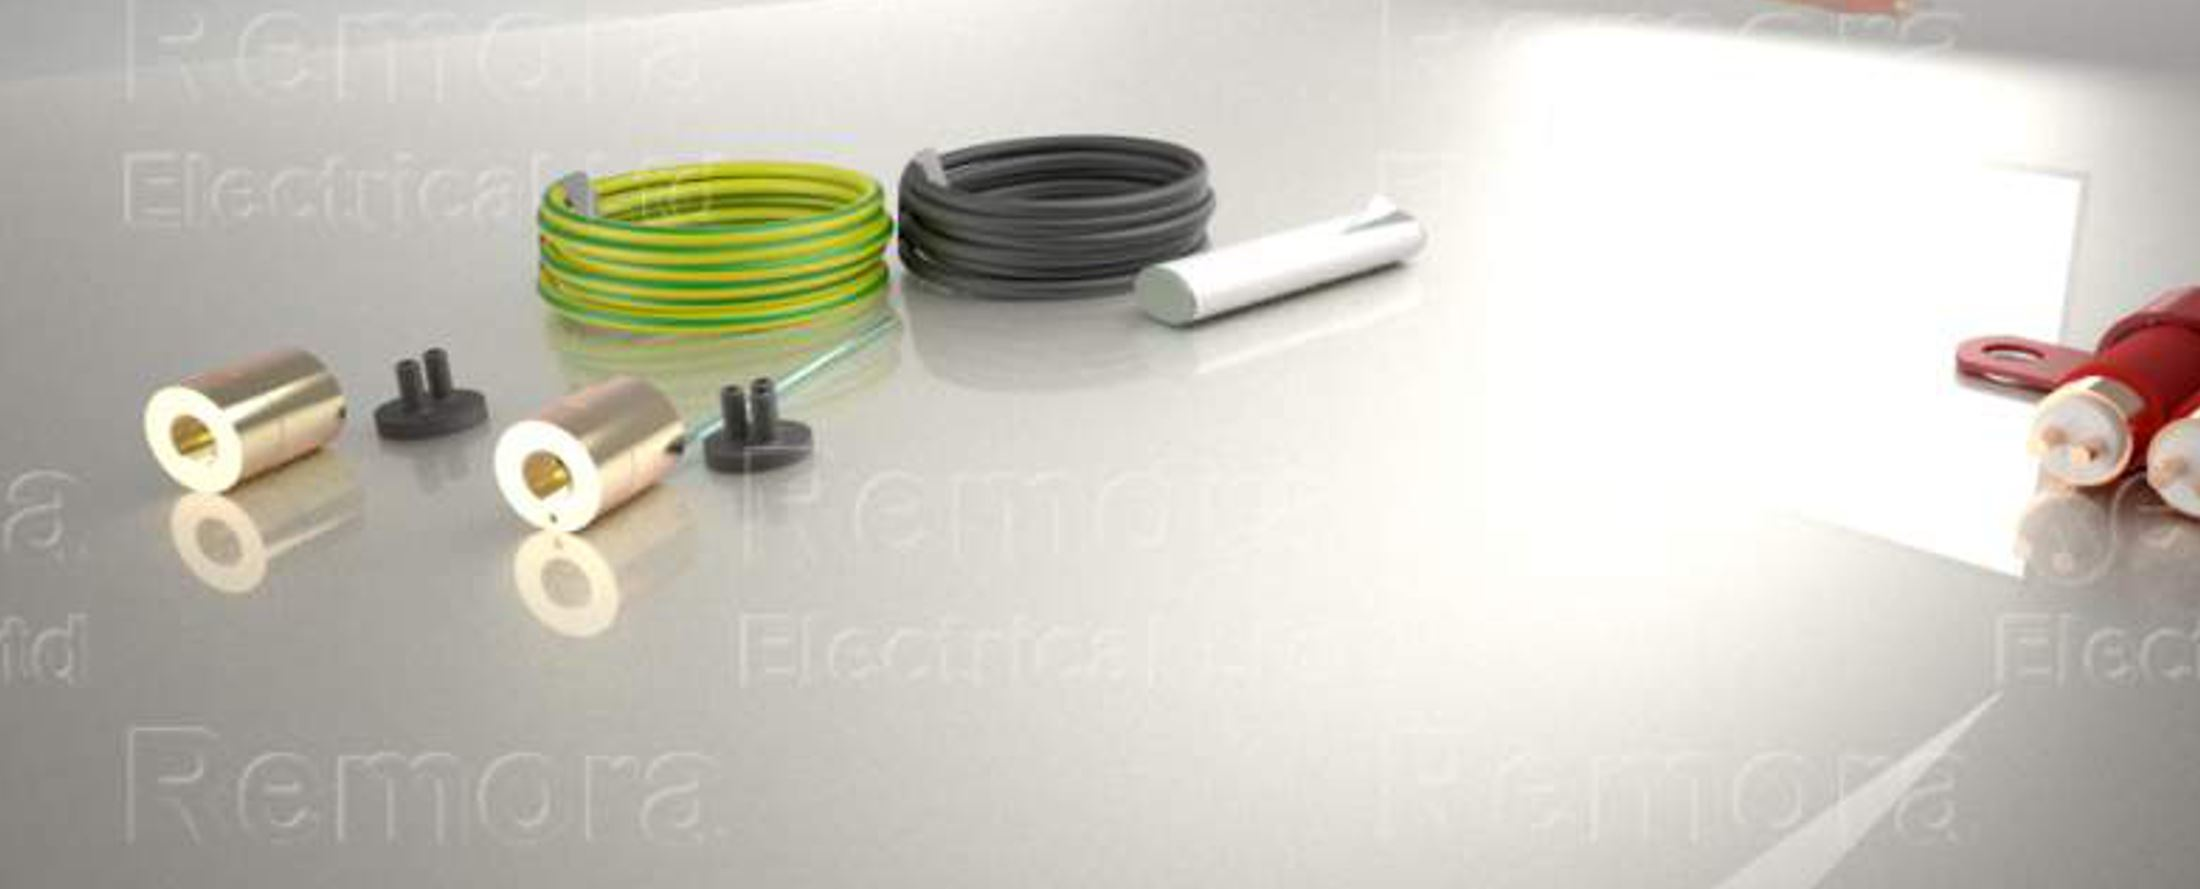 RPS/L Pots and Seals - Remora Electrical Limited